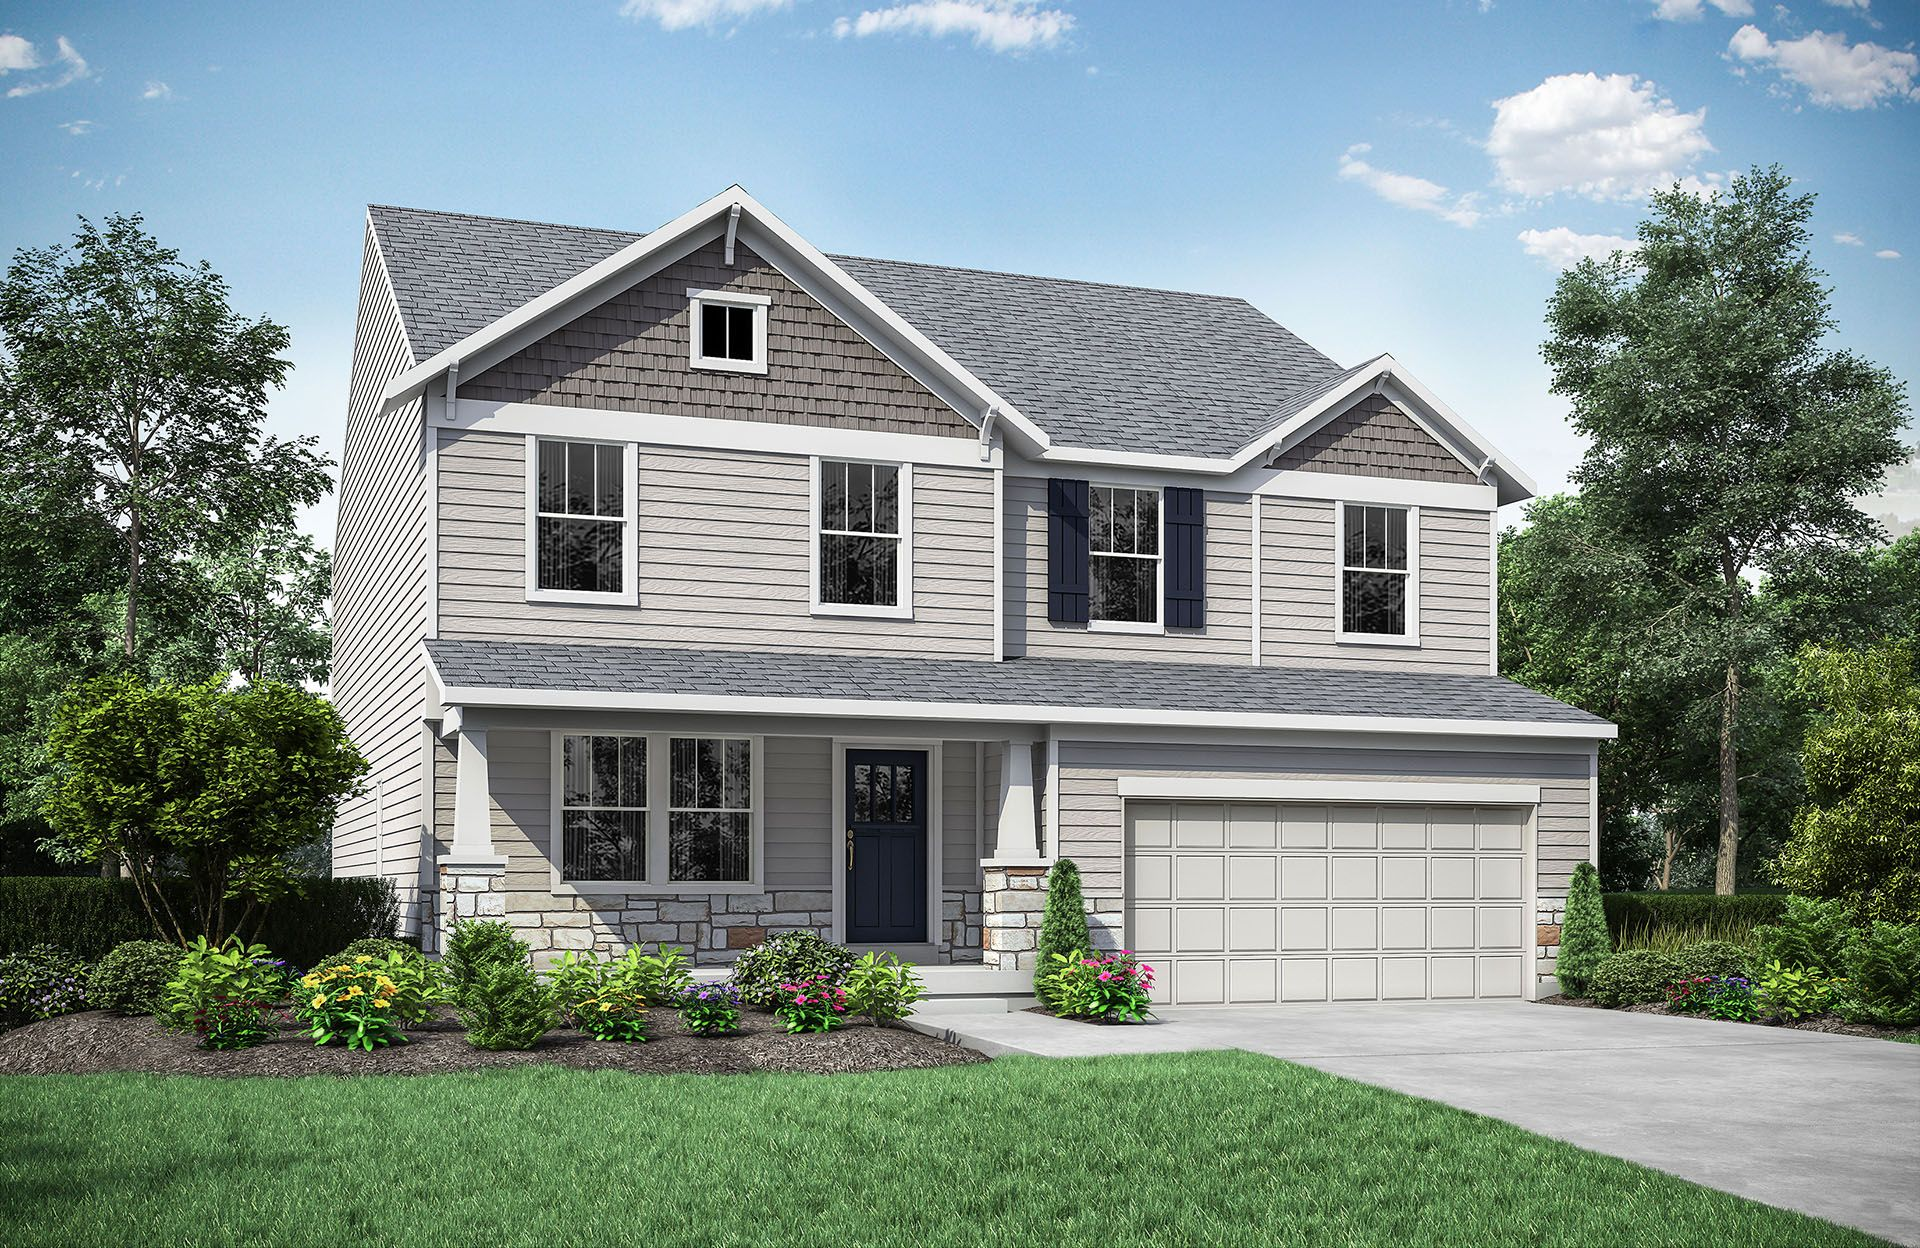 New Construction Homes & Plans in Solon, OH | 612 Homes | NewHomeSource